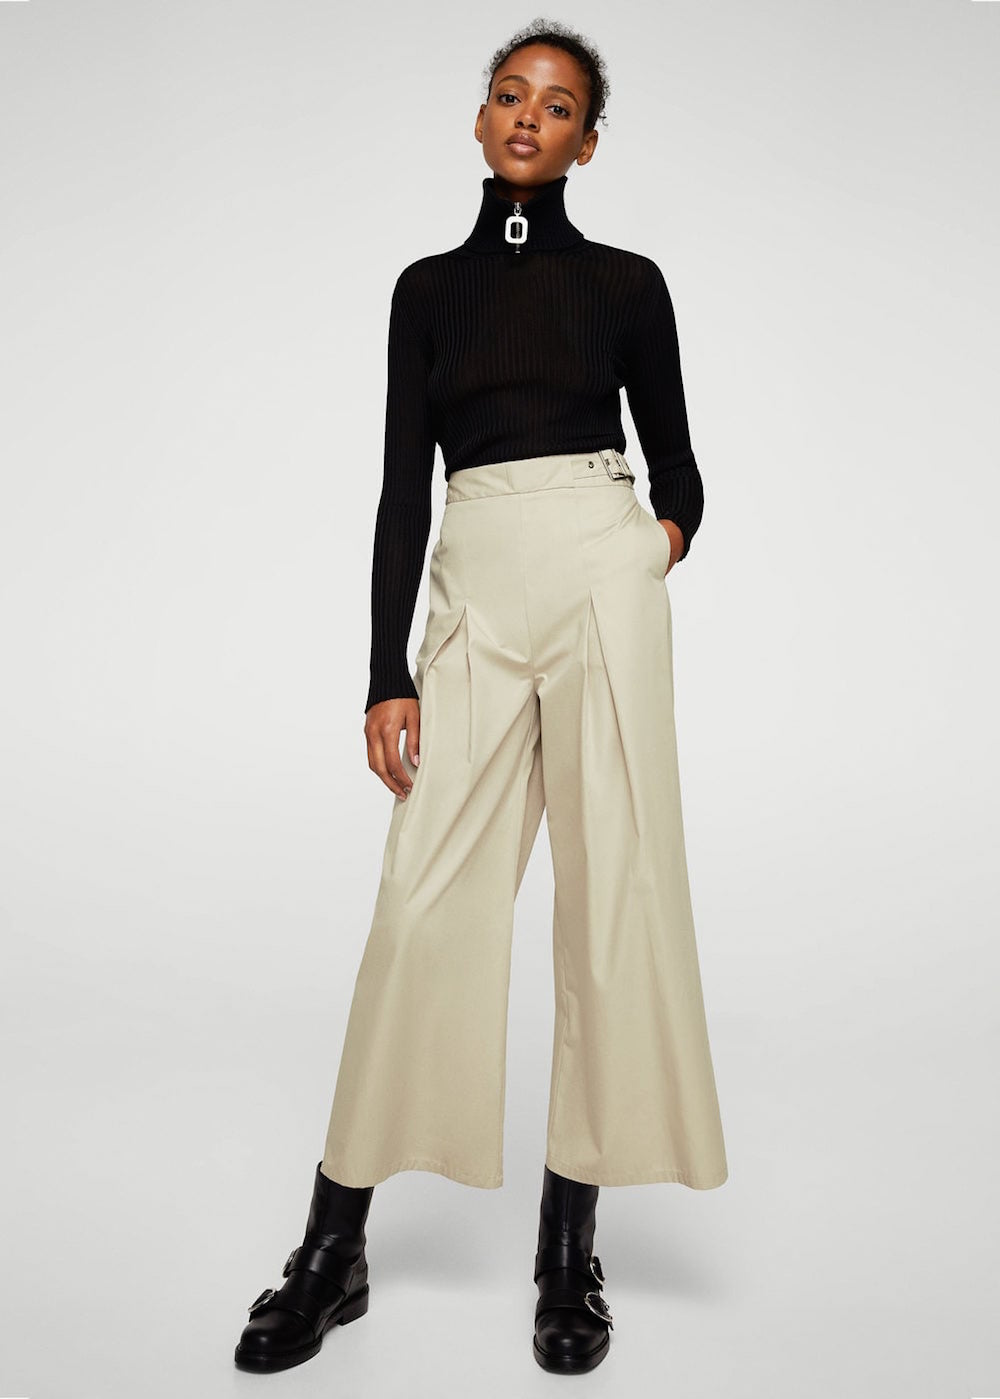 e365bb4653 Wide-Leg Pants Are the New Skinnies - theFashionSpot